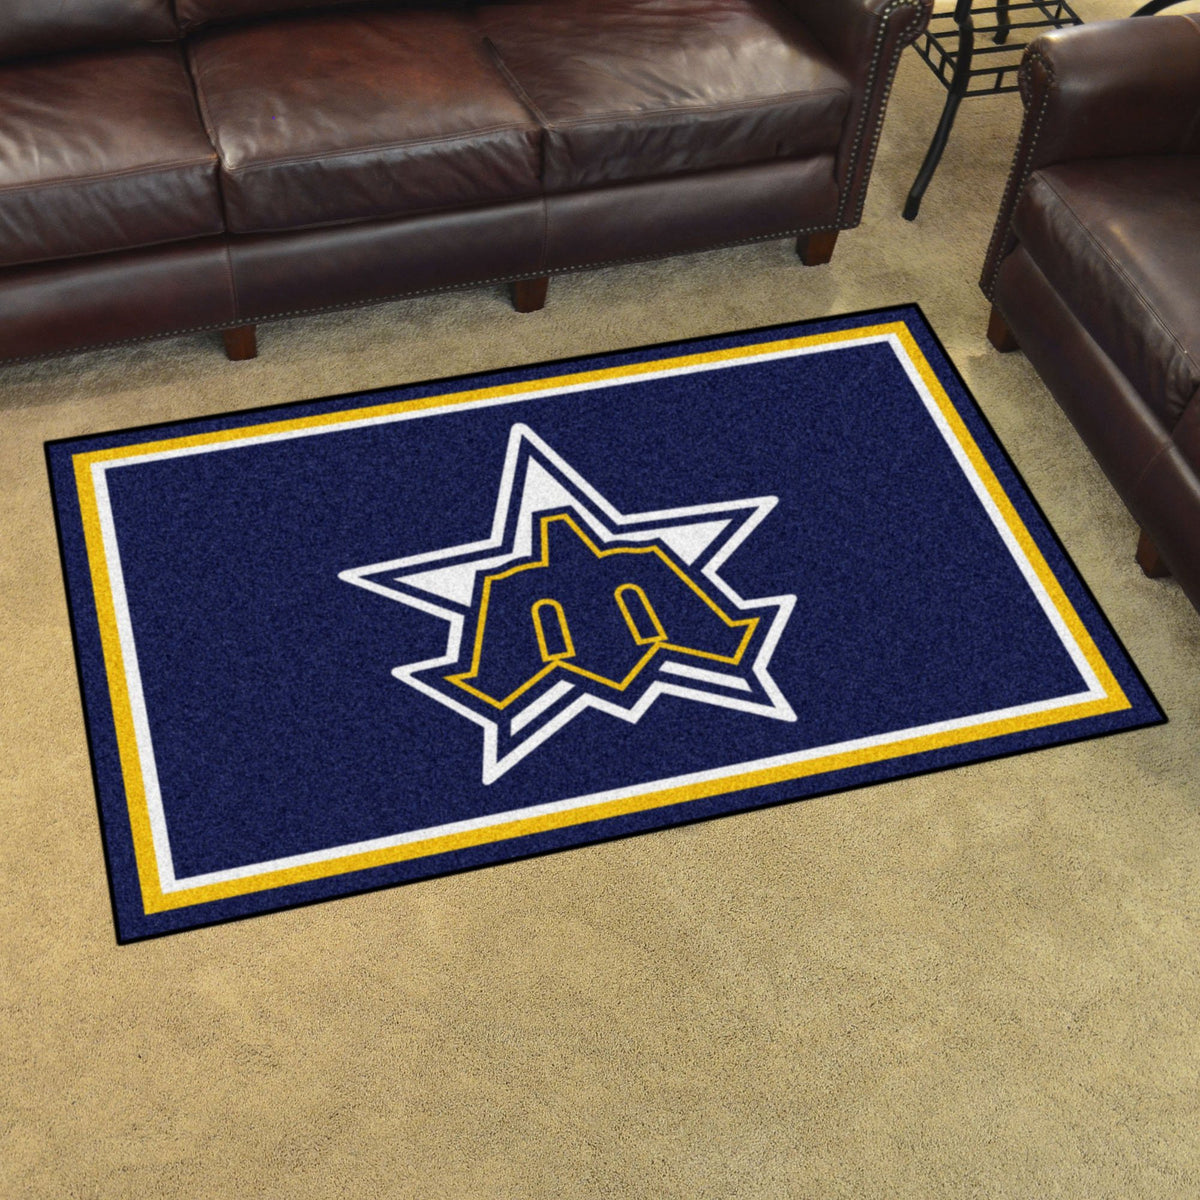 MLB Retro - 4' x 6' Rug MLB Retro Mats, Plush Rugs, 4x6 Rug, MLB, Home Fan Mats Seattle Mariners